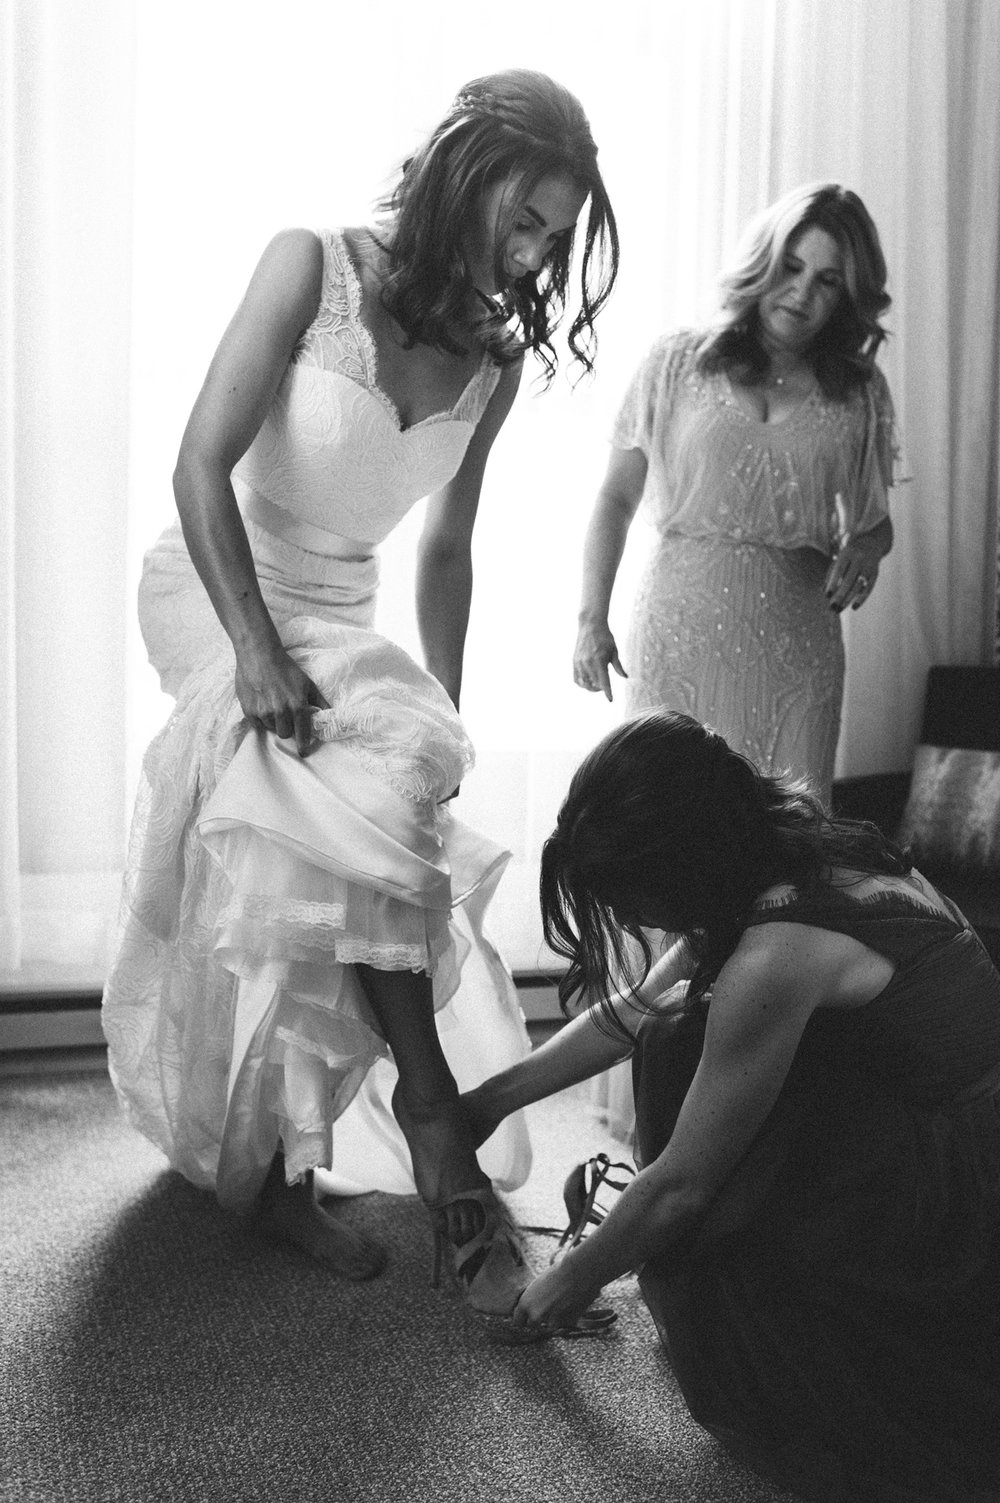 065-beaver-creek--park-hyatt--bride--wedding-photo--dress--bridesmaid--black-and-white.jpg